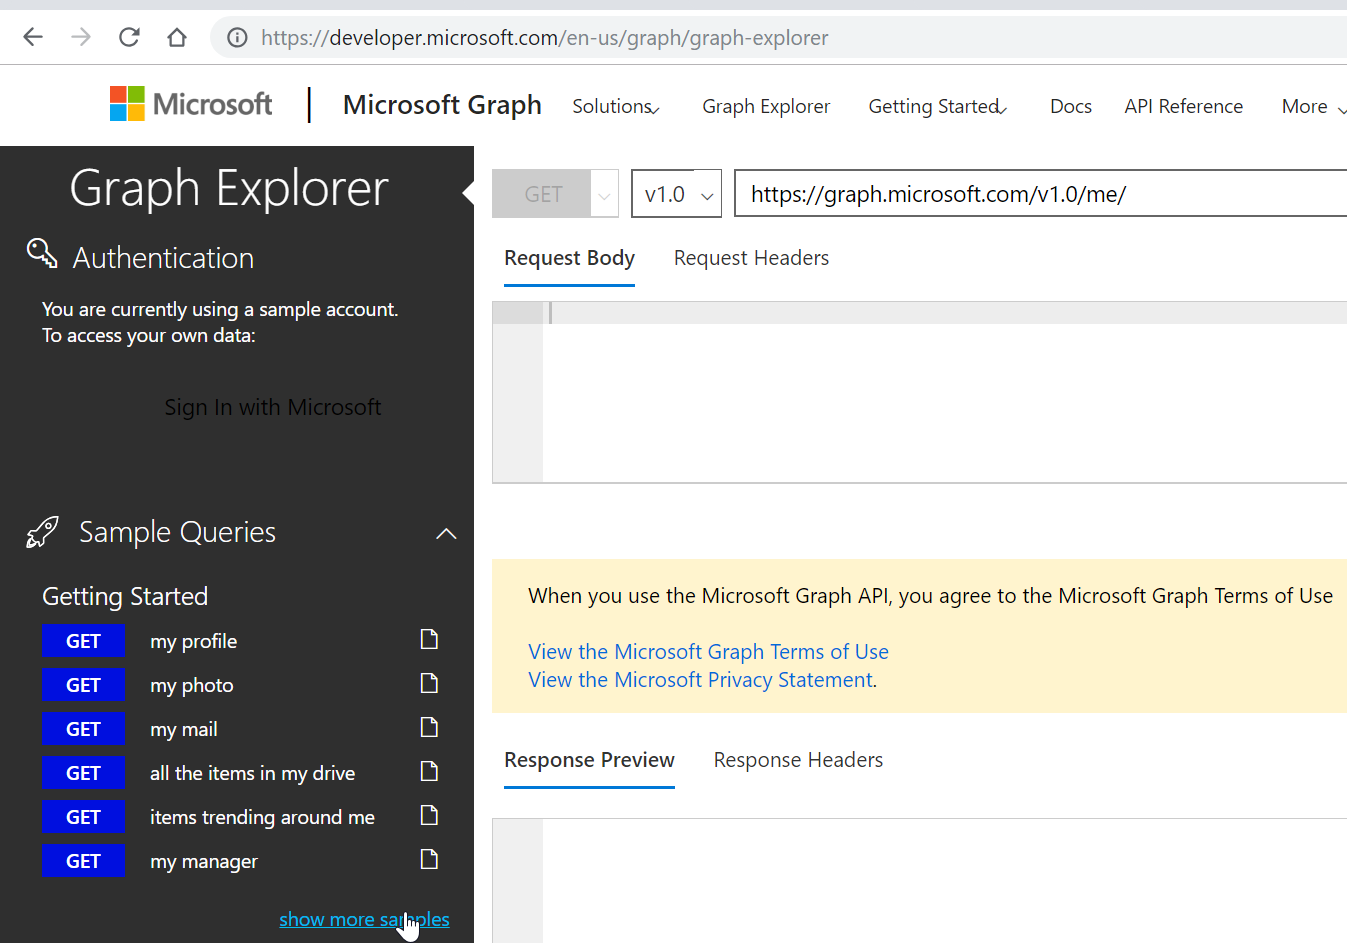 C O https://developer.microsoft.com/en-us/graph/graph-explorer  Microsoft I Microsoft Graph solutions, Graph Explorer Getting starteæ Docs API Reference  More  Graph Explorer  Authentication  You are currently using a sample account  To access your own data:  ign In with Microsofl  Sample Queries  Getting Started  GET  GET  GET  GET  GET  GET  my profile  my photo  my mail  all the items in my drive  items trending around me  my manager  https://graph.microsoft.com/vl.0/me/  VI.o v  Request Body Request Headers  When you use the Microsoft Graph API, you agree to the Microsoft Graph Terms of use  View the Microsoft Graph Terms of Use  View the Microsoft Privacy Statement  Response Preview Response Headers